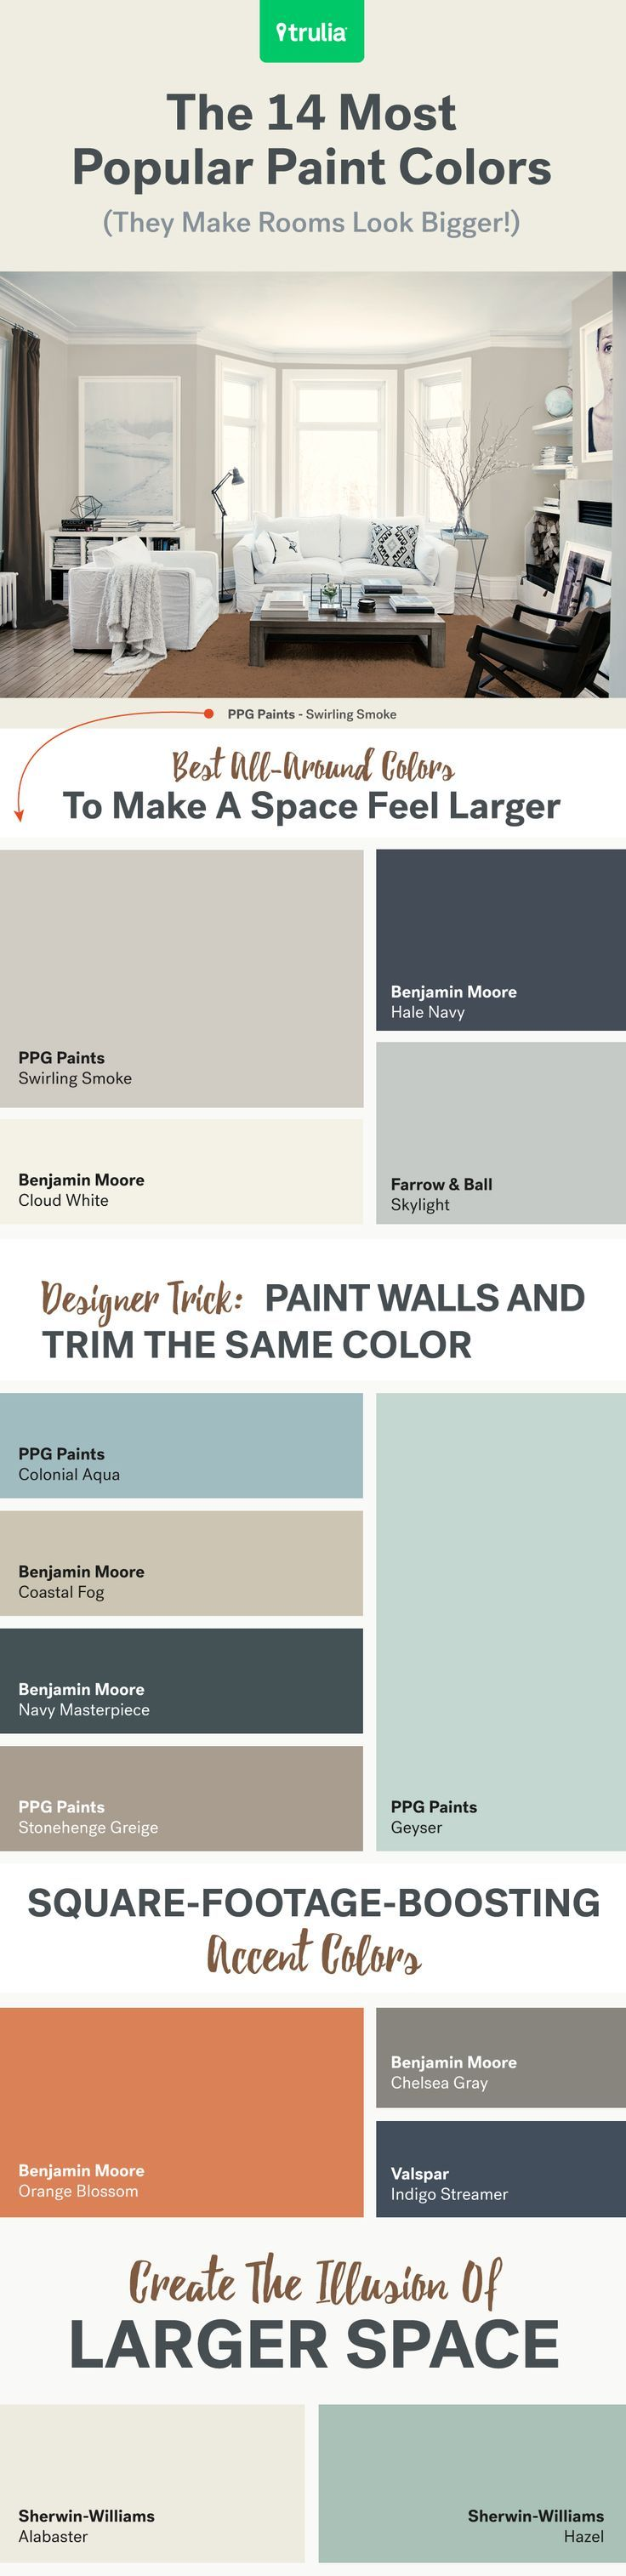 Make Any Room Look Ger With These 14 Most Por Paint Colors Bonus Tip Walls And Trim The Same Color To Create Illusion Of High Ceilings